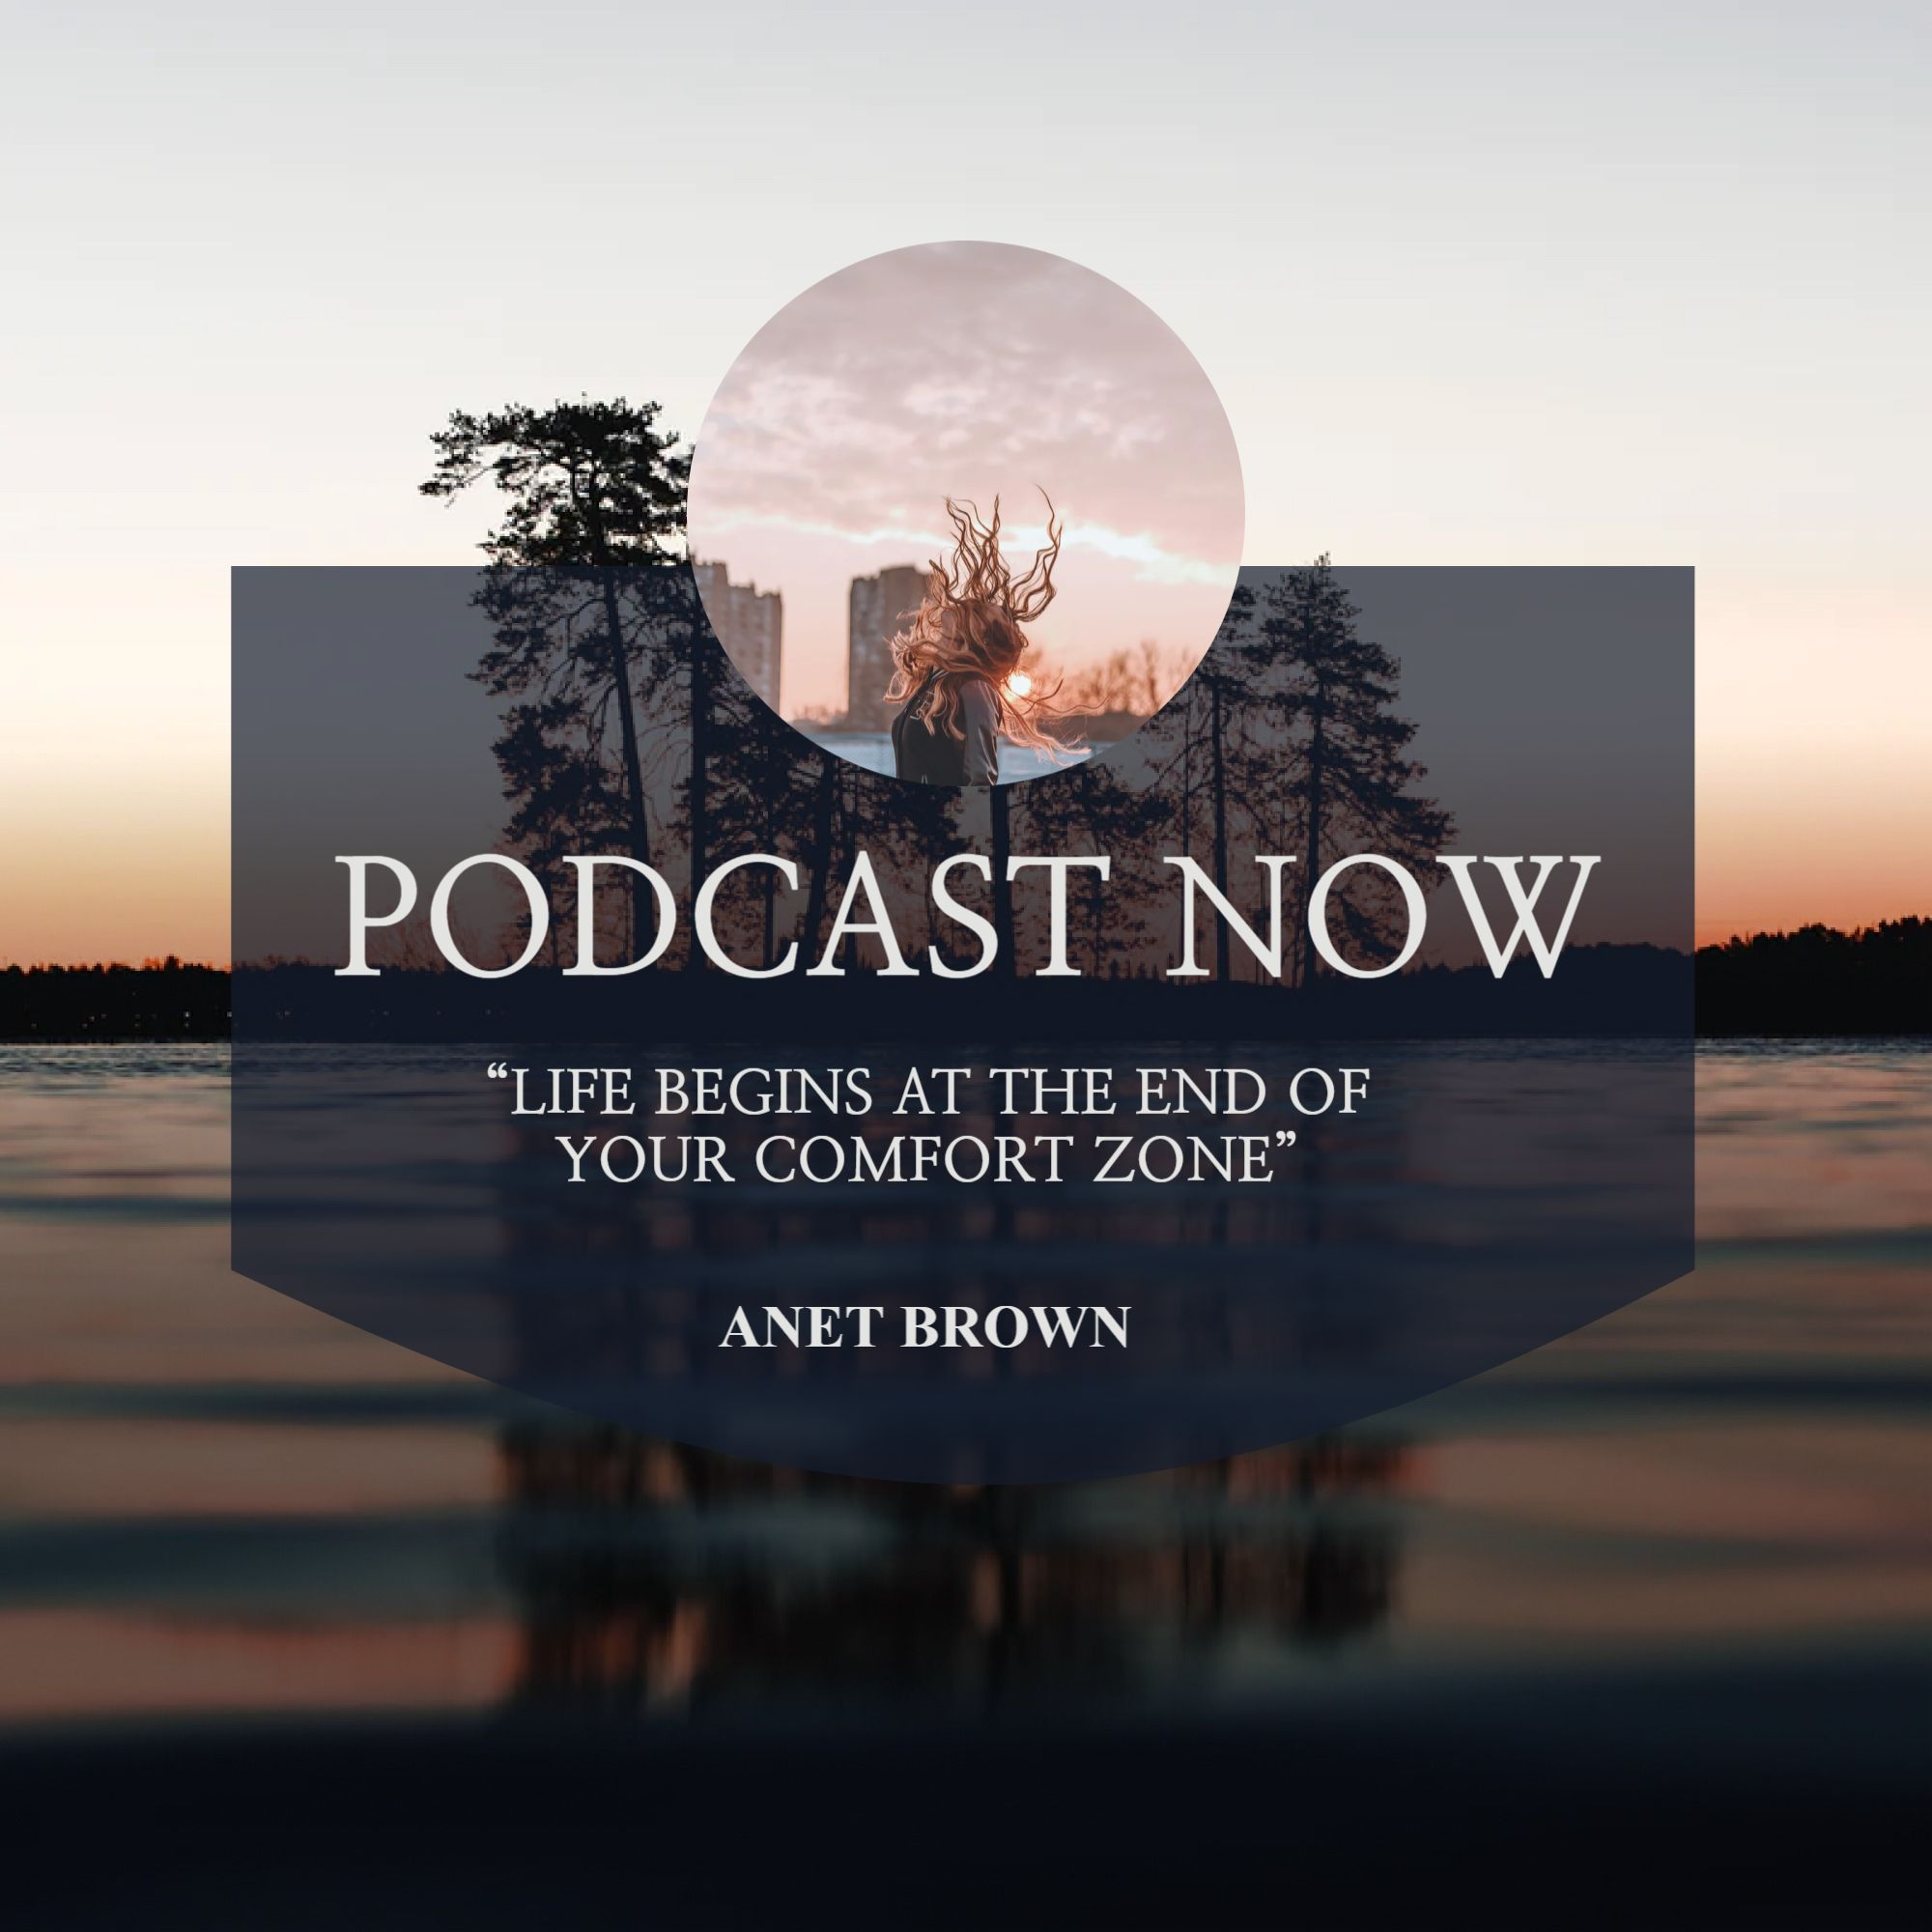 Podcast Now Cover Design Template